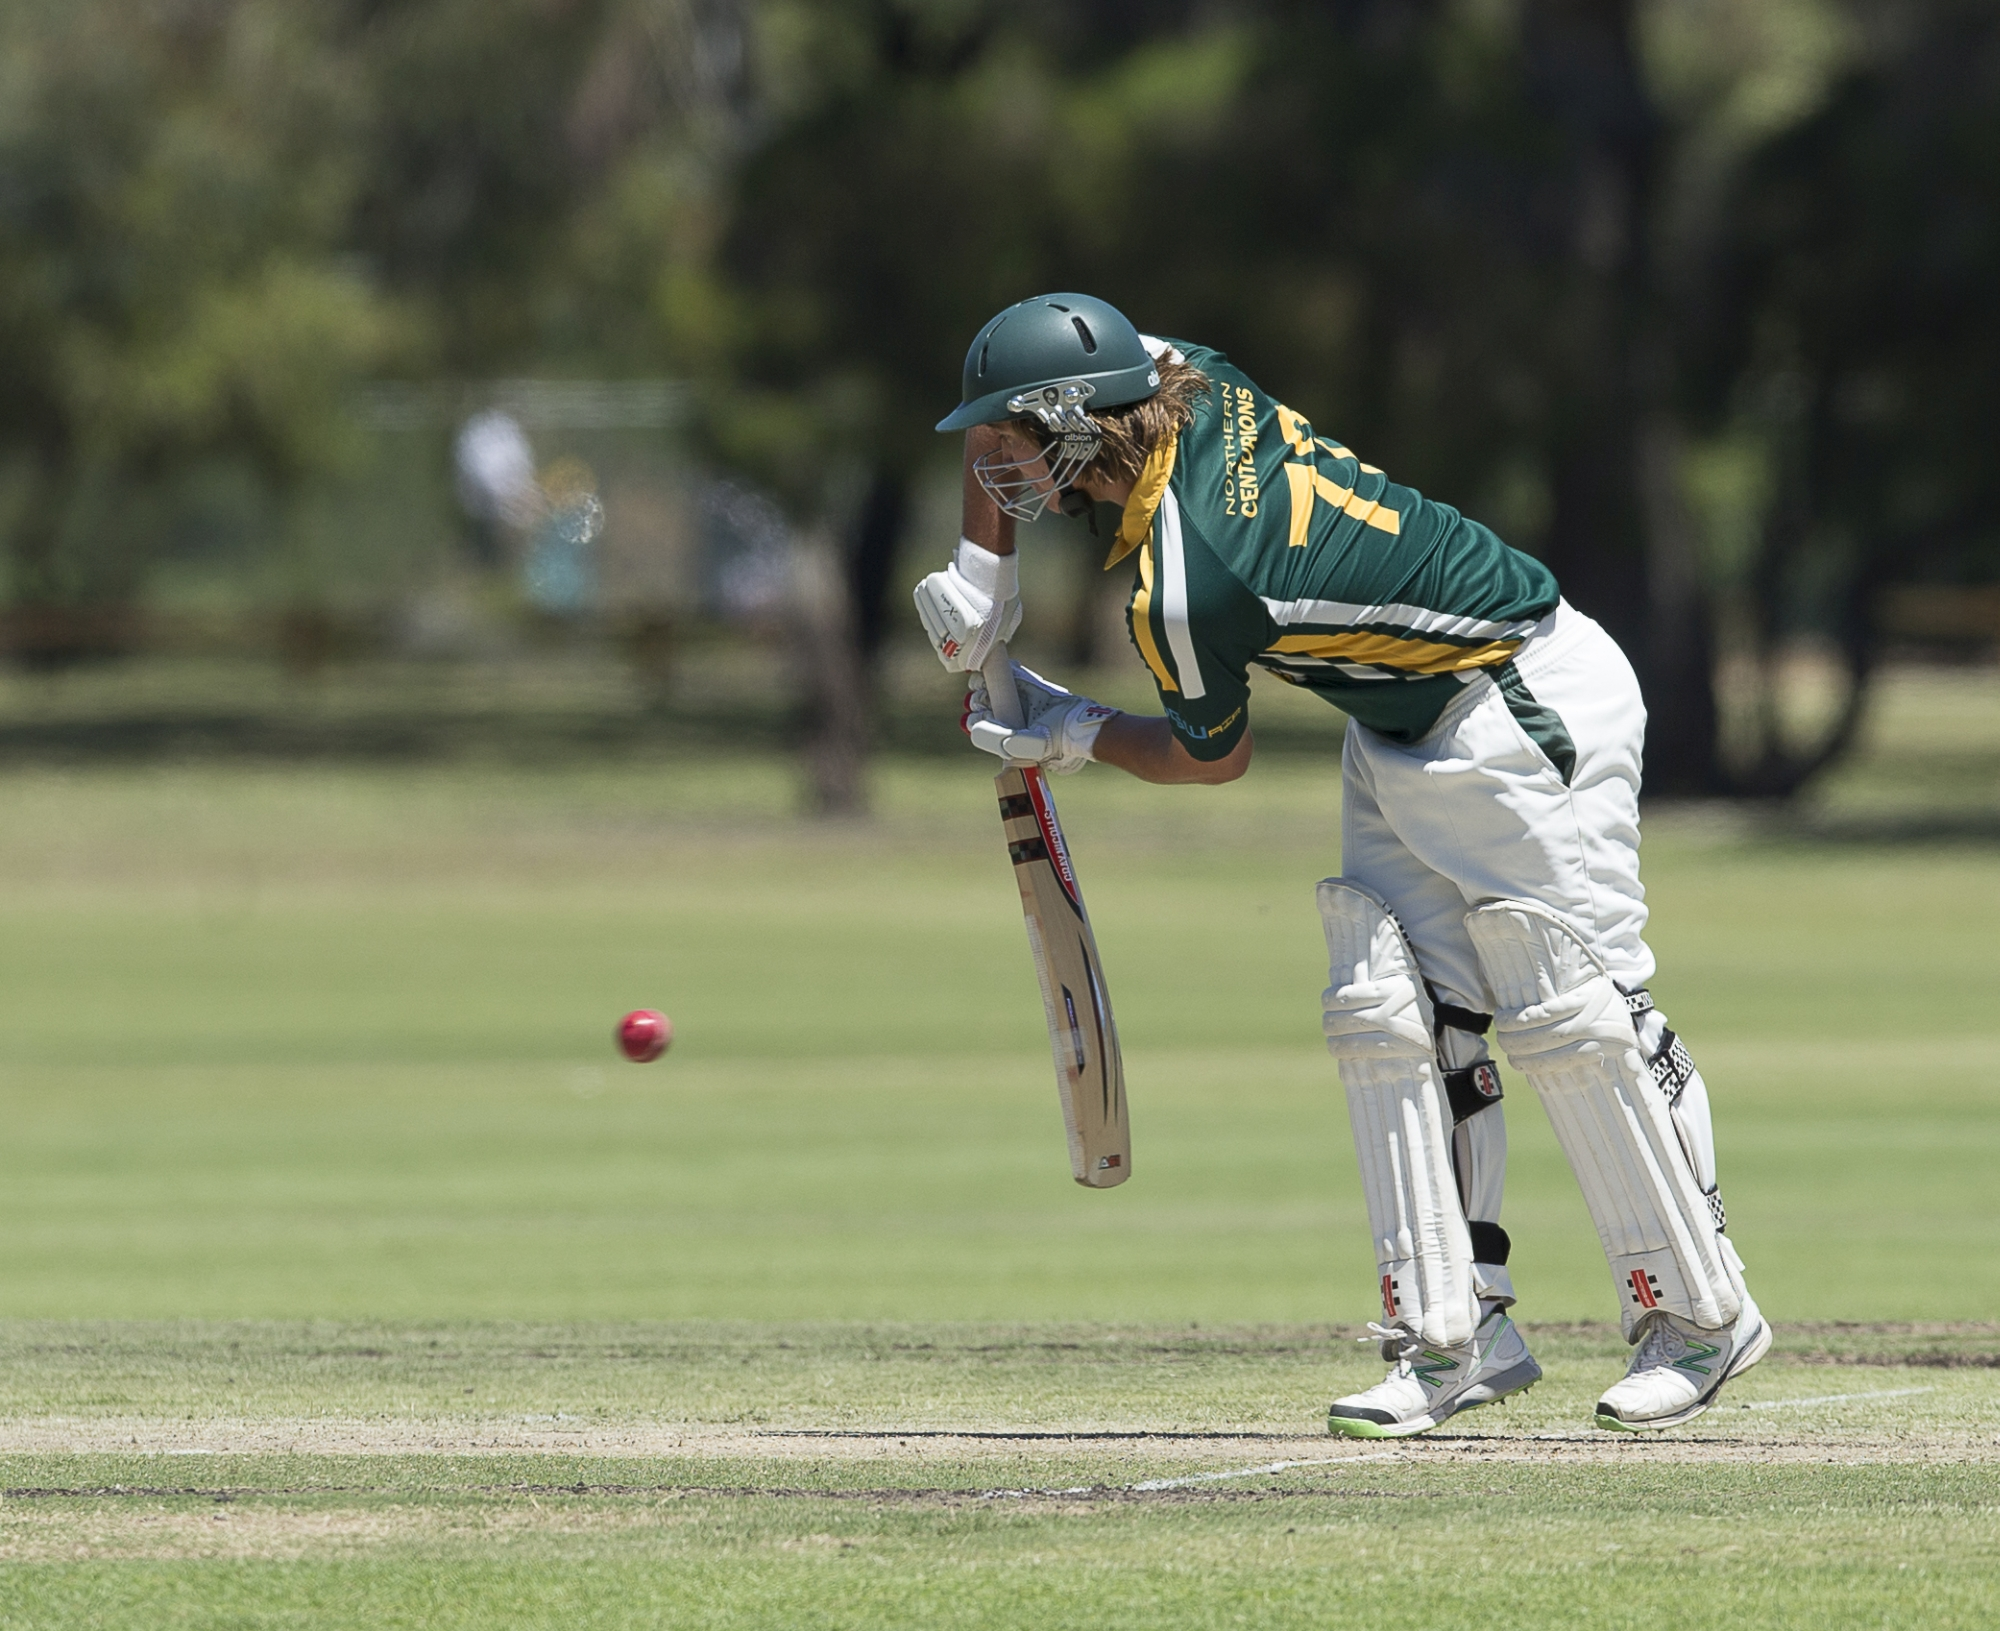 Promising Joondalup batsman Clint Hinchliffe in action. Picture: Dan White